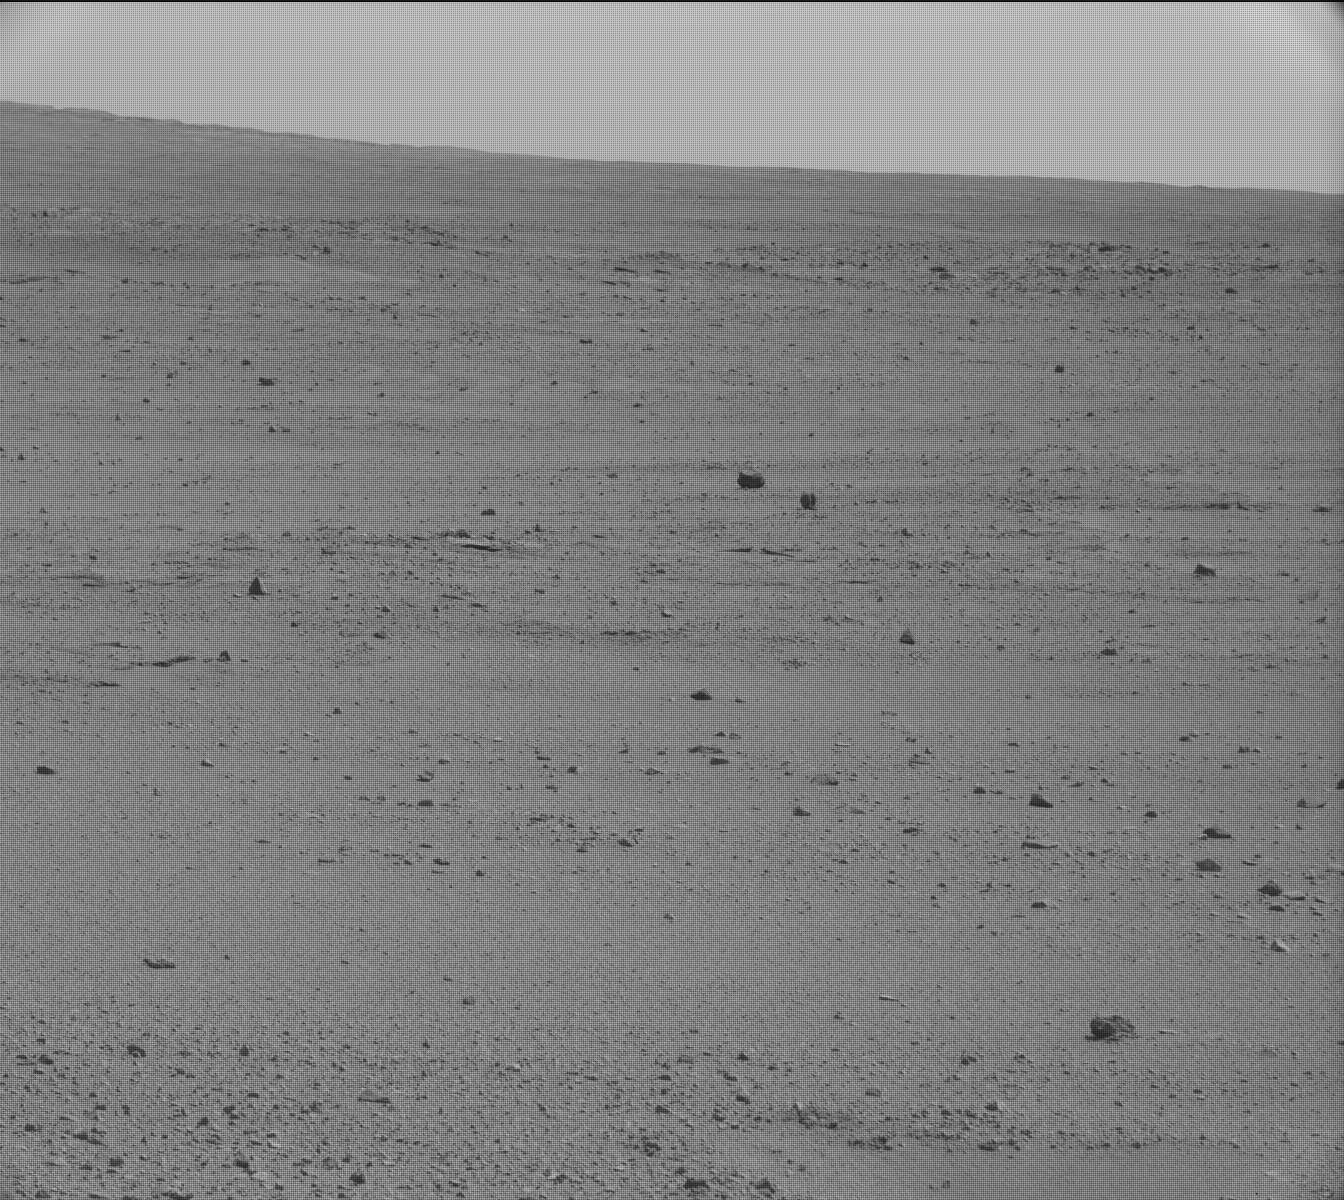 Nasa's Mars rover Curiosity acquired this image using its Mast Camera (Mastcam) on Sol 365